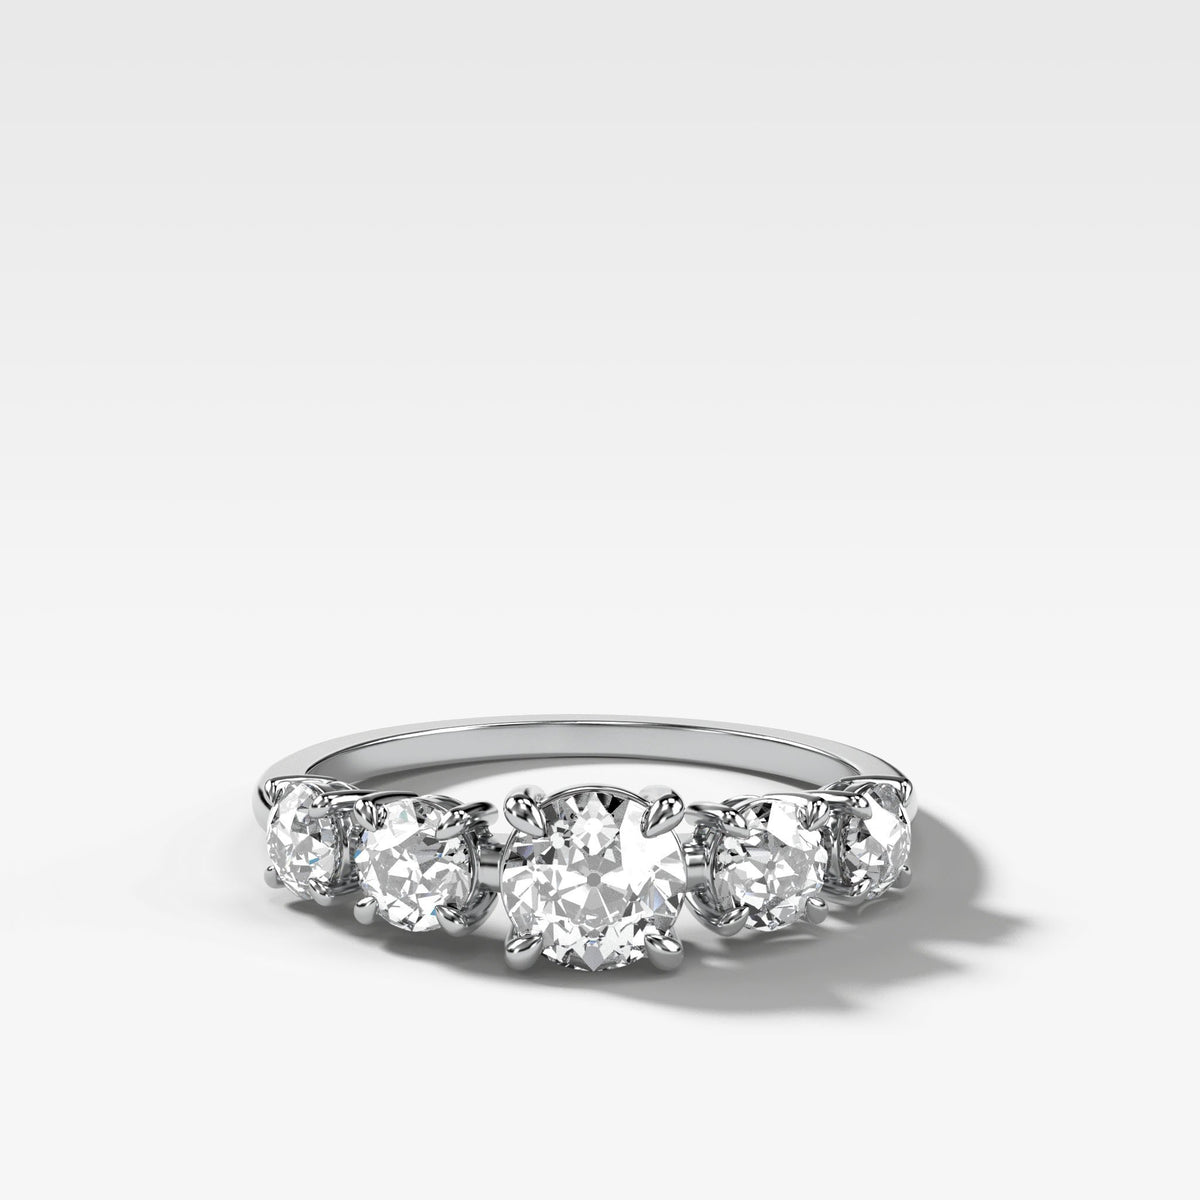 Graduated Five Stone ring with Old Euro Cut Diamonds in White Gold by Good Stone